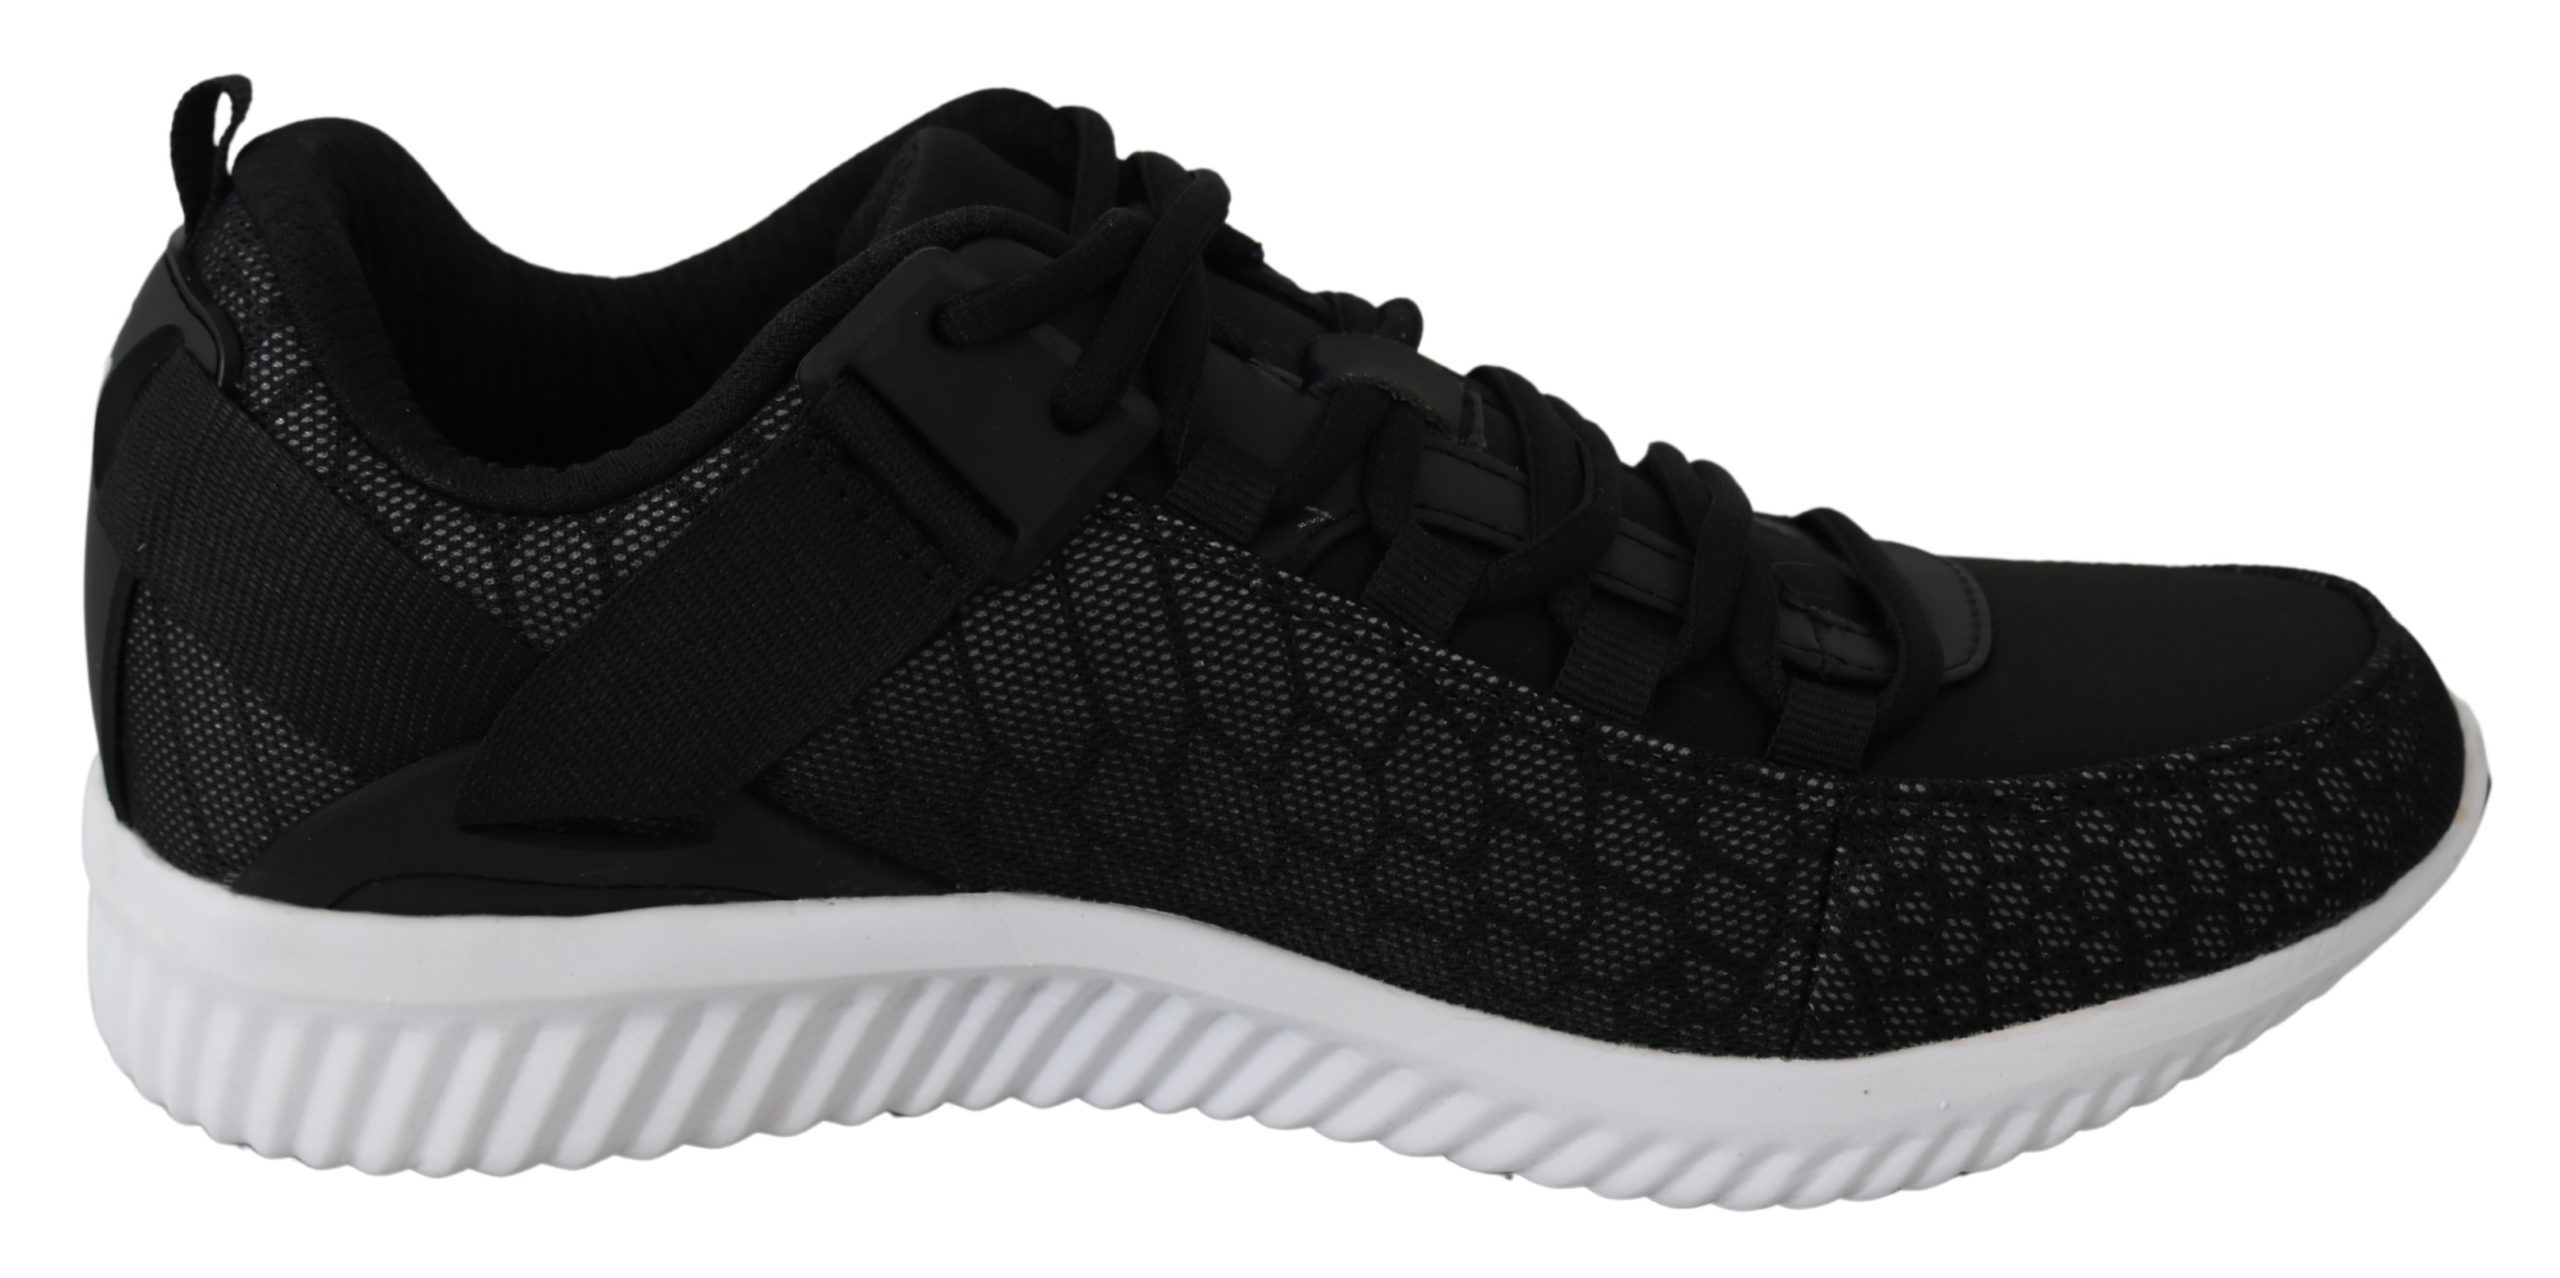 Black Polyester Adrian Sneakers Shoes - EU45/US12